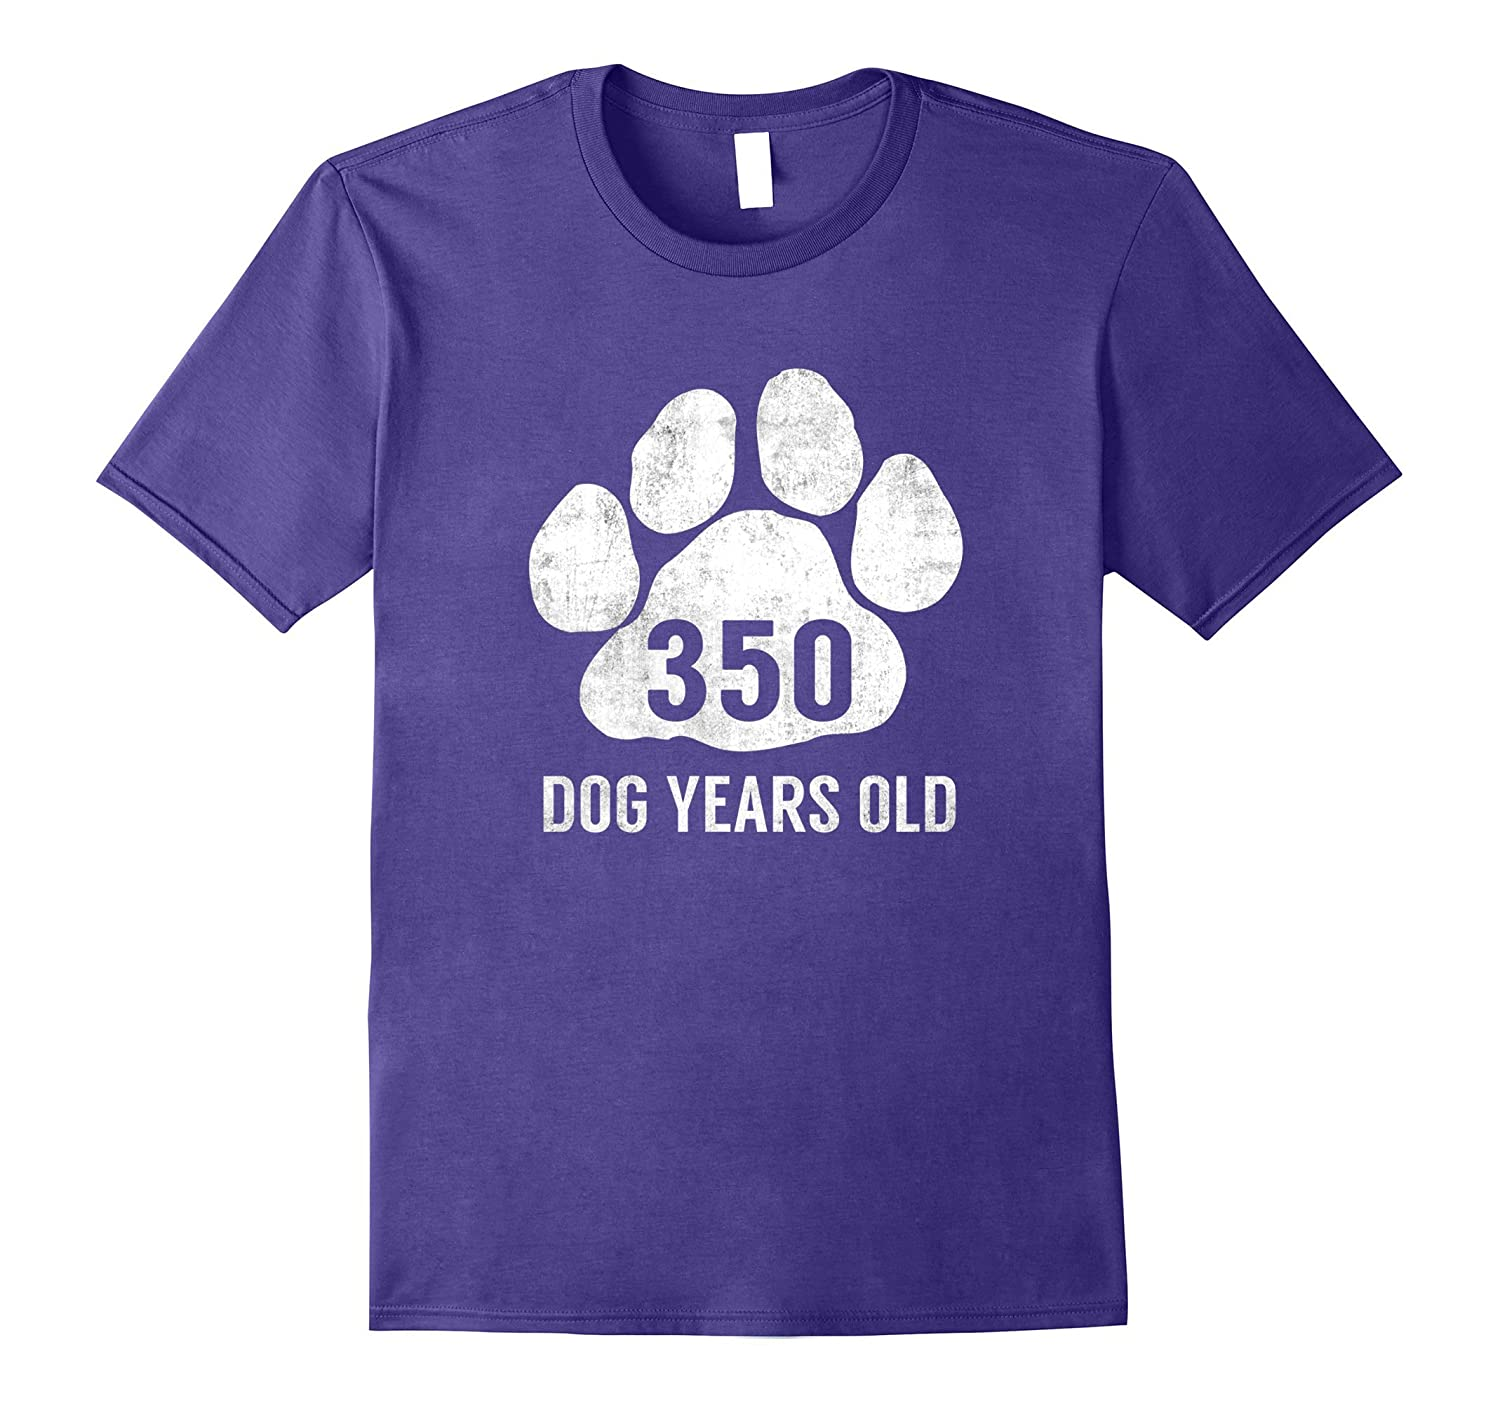 350 Dog Years Old T-Shirt Funny 50th Birthday Gag Gift-TH